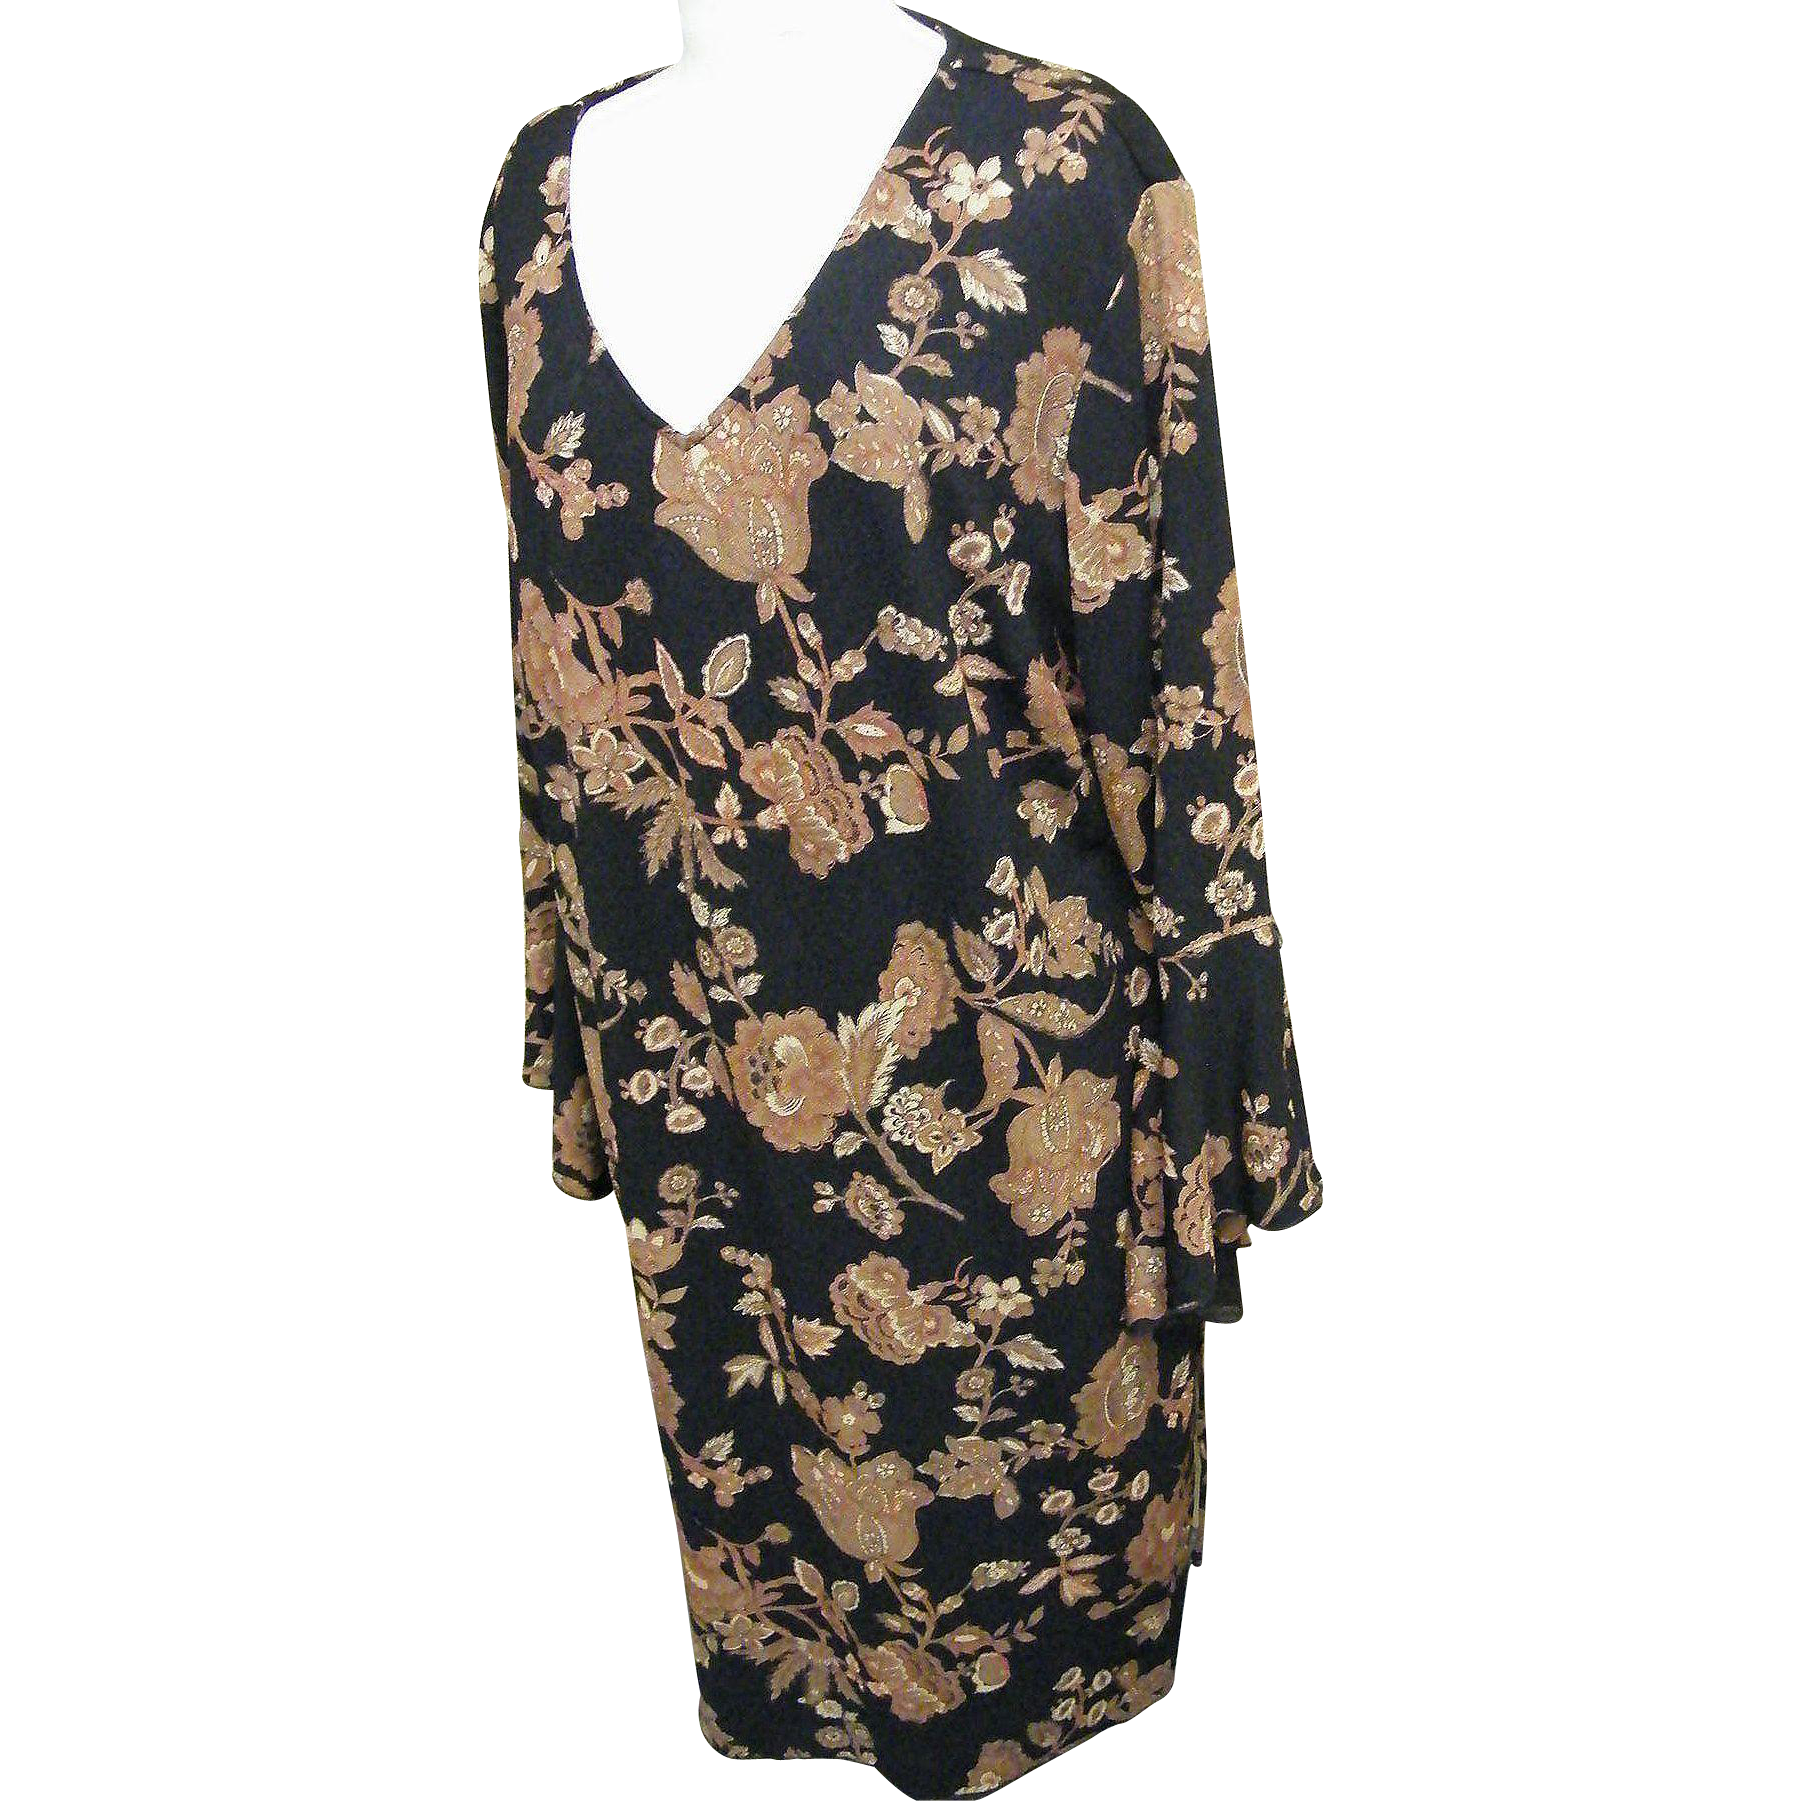 Summer Dark..Tapestry Print..Shift Dress..Blk Ground  / Brown Print..Polyester Crepe Single knit..NWT..Size 22W / 24W